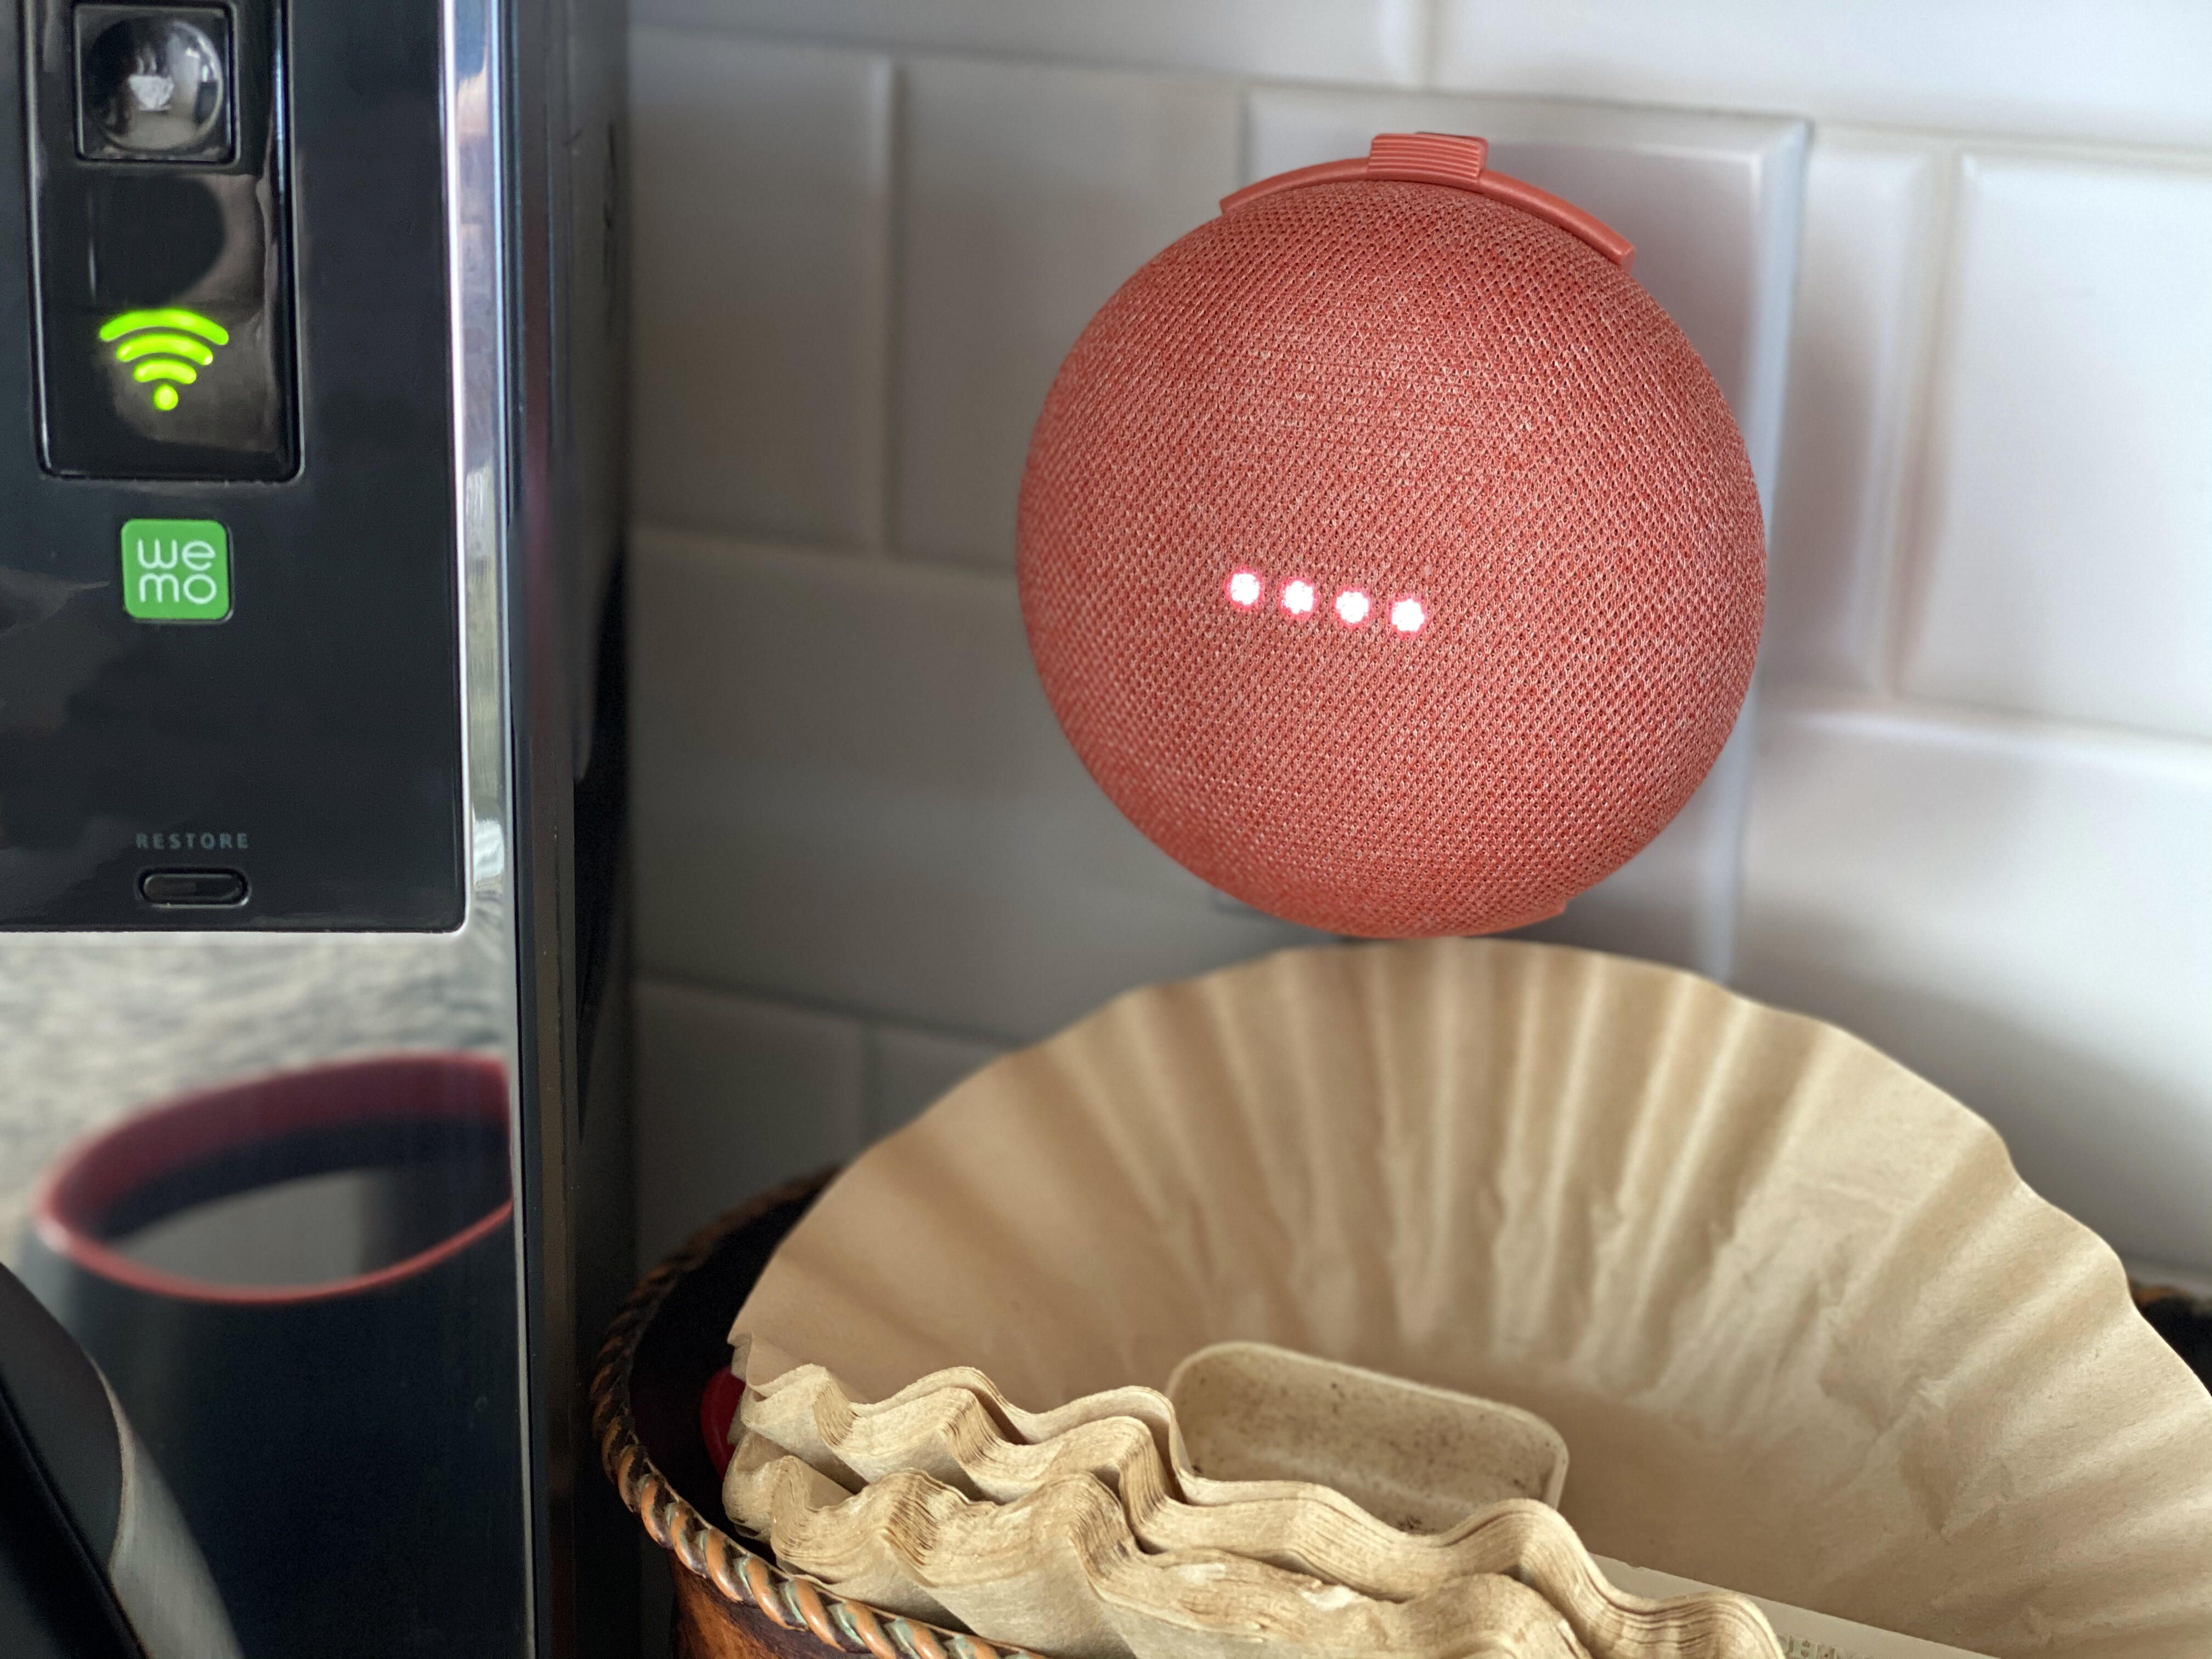 Google Home Routines can be annoying. Here's how to avoid thatGoogle Home可能很烦人,下面是避免这种情况的方法